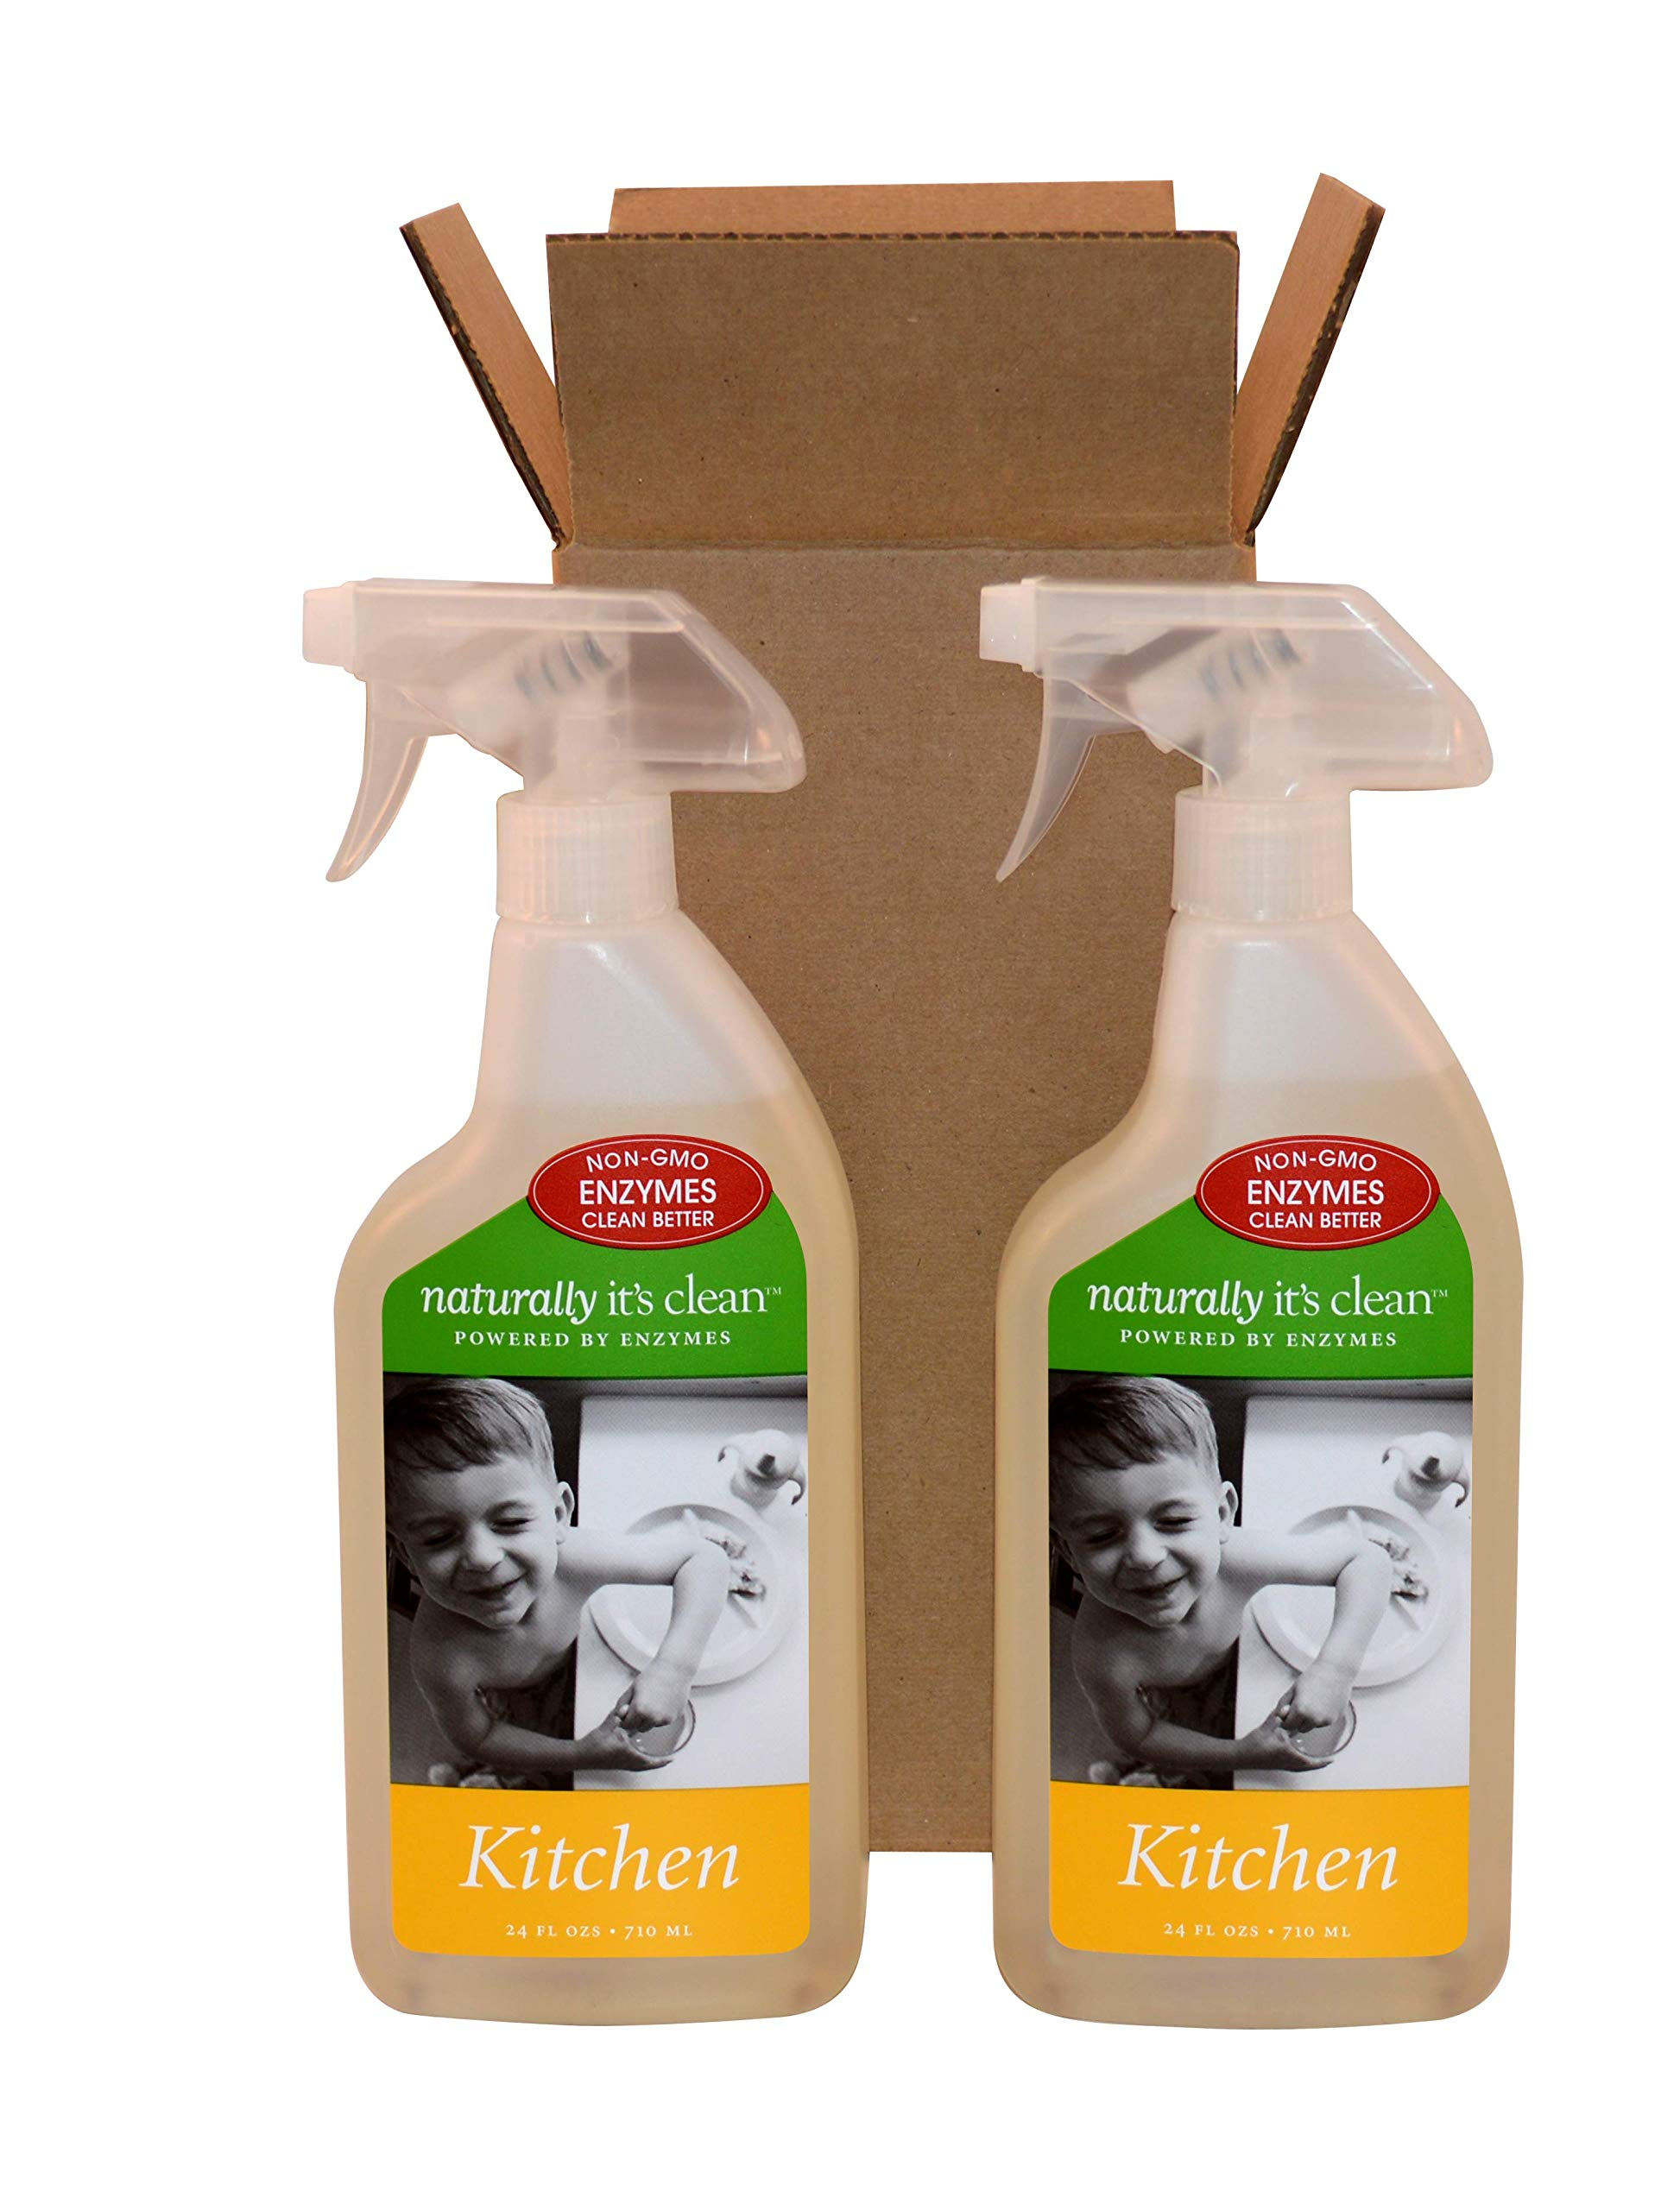 2-pack 24oz Naturally It's Clean Kitchen Cleaner;Enzyme Cleaner safely cleans all kitchen surfaces&removes fats, oils, grease&kitchen grime; Remove odors; Non-Toxic&ALL NATURAL, Pet Safe&Child Safe